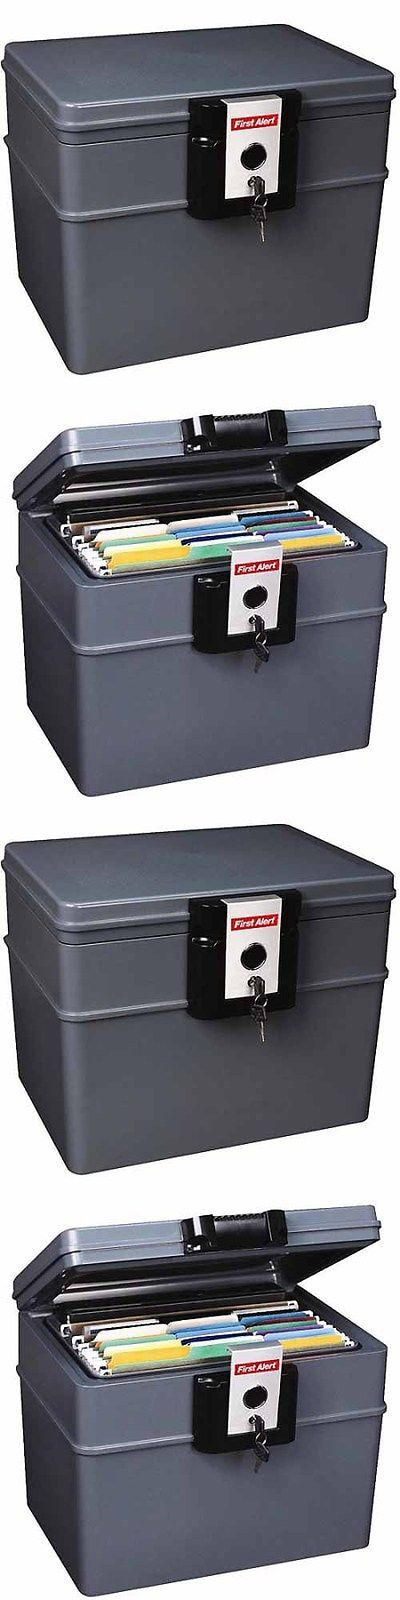 Safes 121836: New .62 Cu Ft Fireproof And Waterproof Home Safe Box Files Office Gun Security -> BUY IT NOW ONLY: $63.76 on eBay!